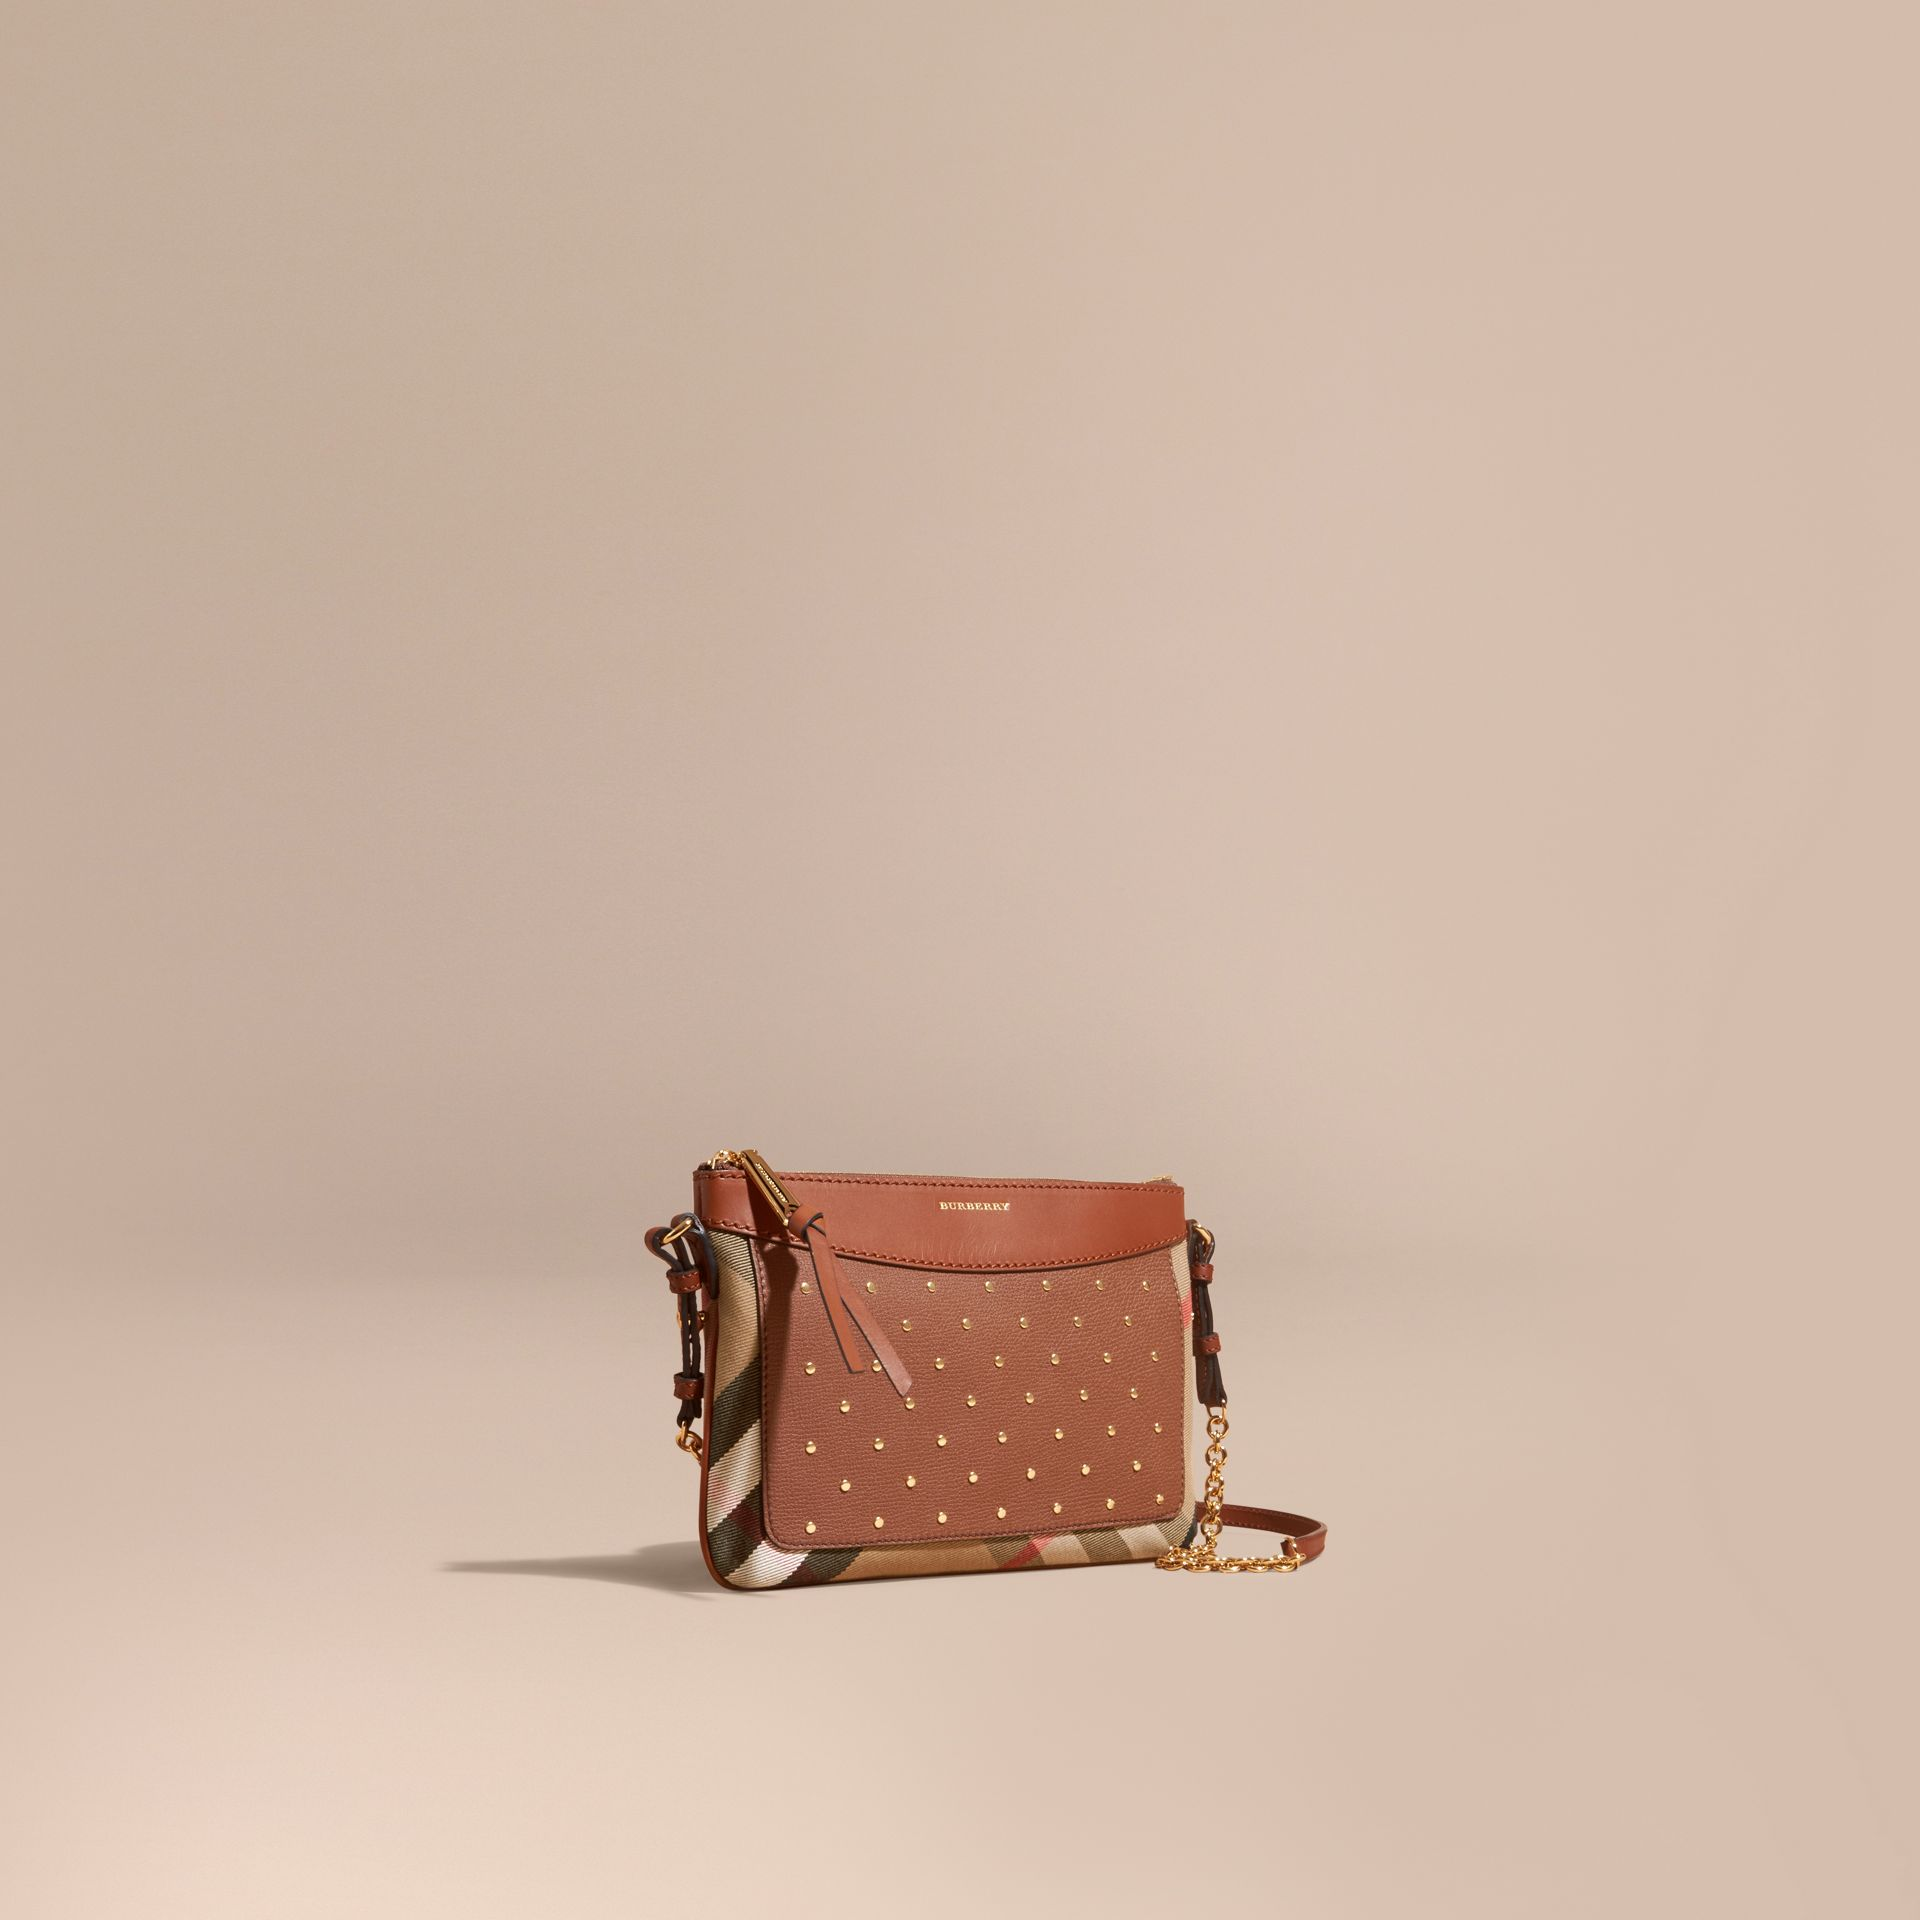 Tan Riveted Leather and House Check Clutch Bag Tan - gallery image 1